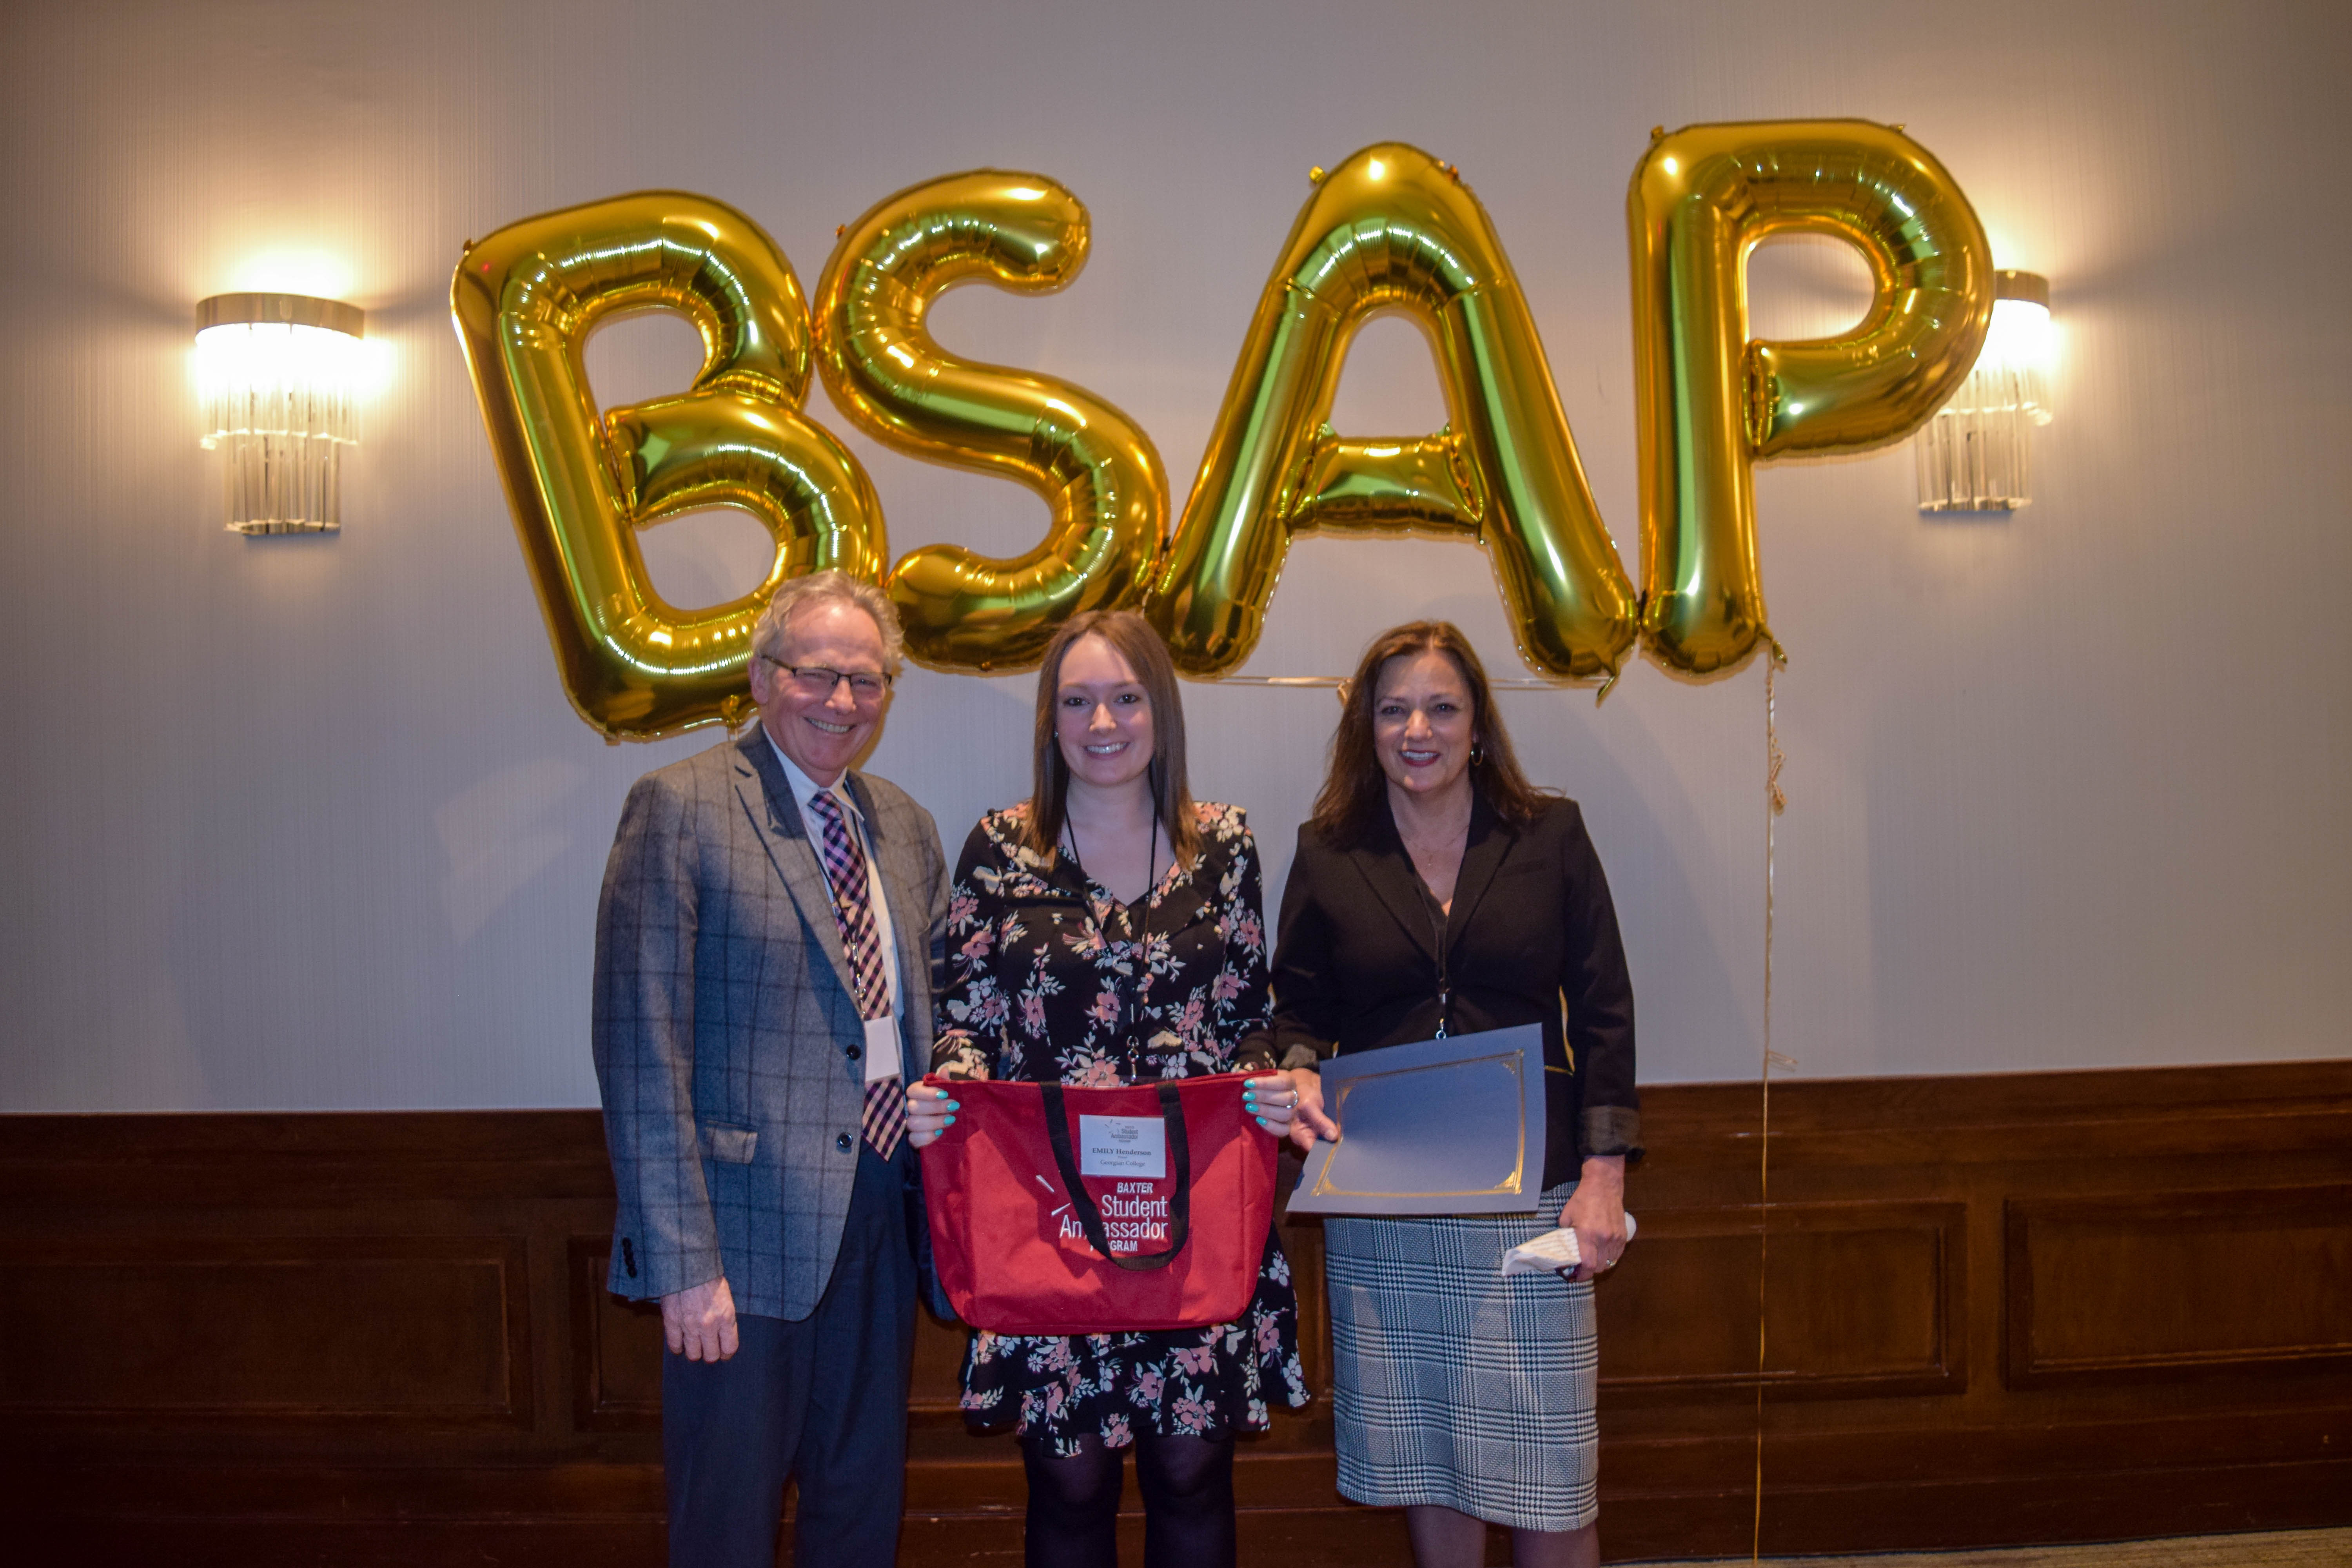 Emily Henderson (Baxter Ambassador, Georgian College) accepts her BSAP certificate and prize bag from David McClung (l) and Wendy McClung (r)